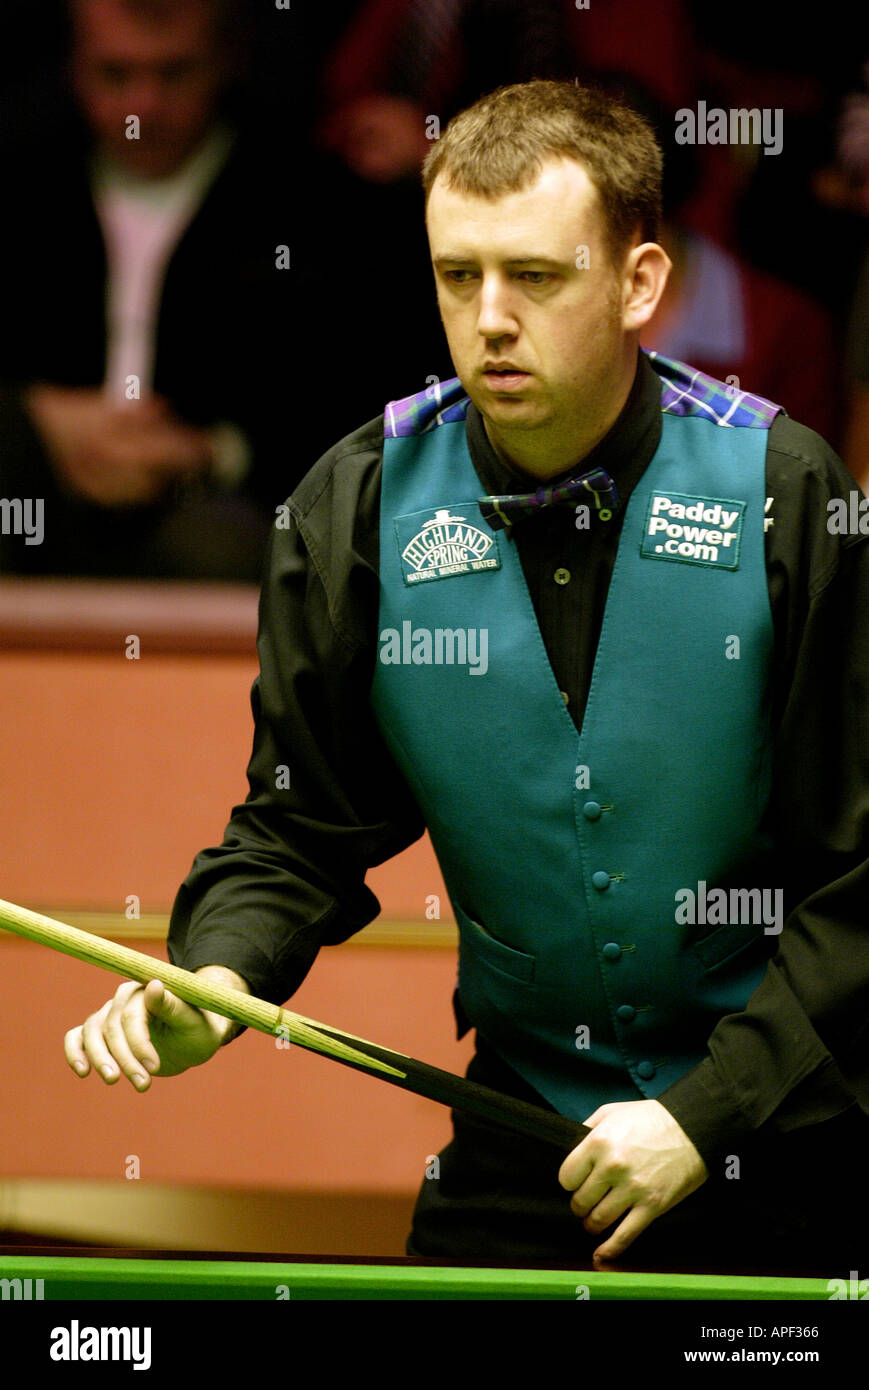 Snooker Wm Sheffield 2021